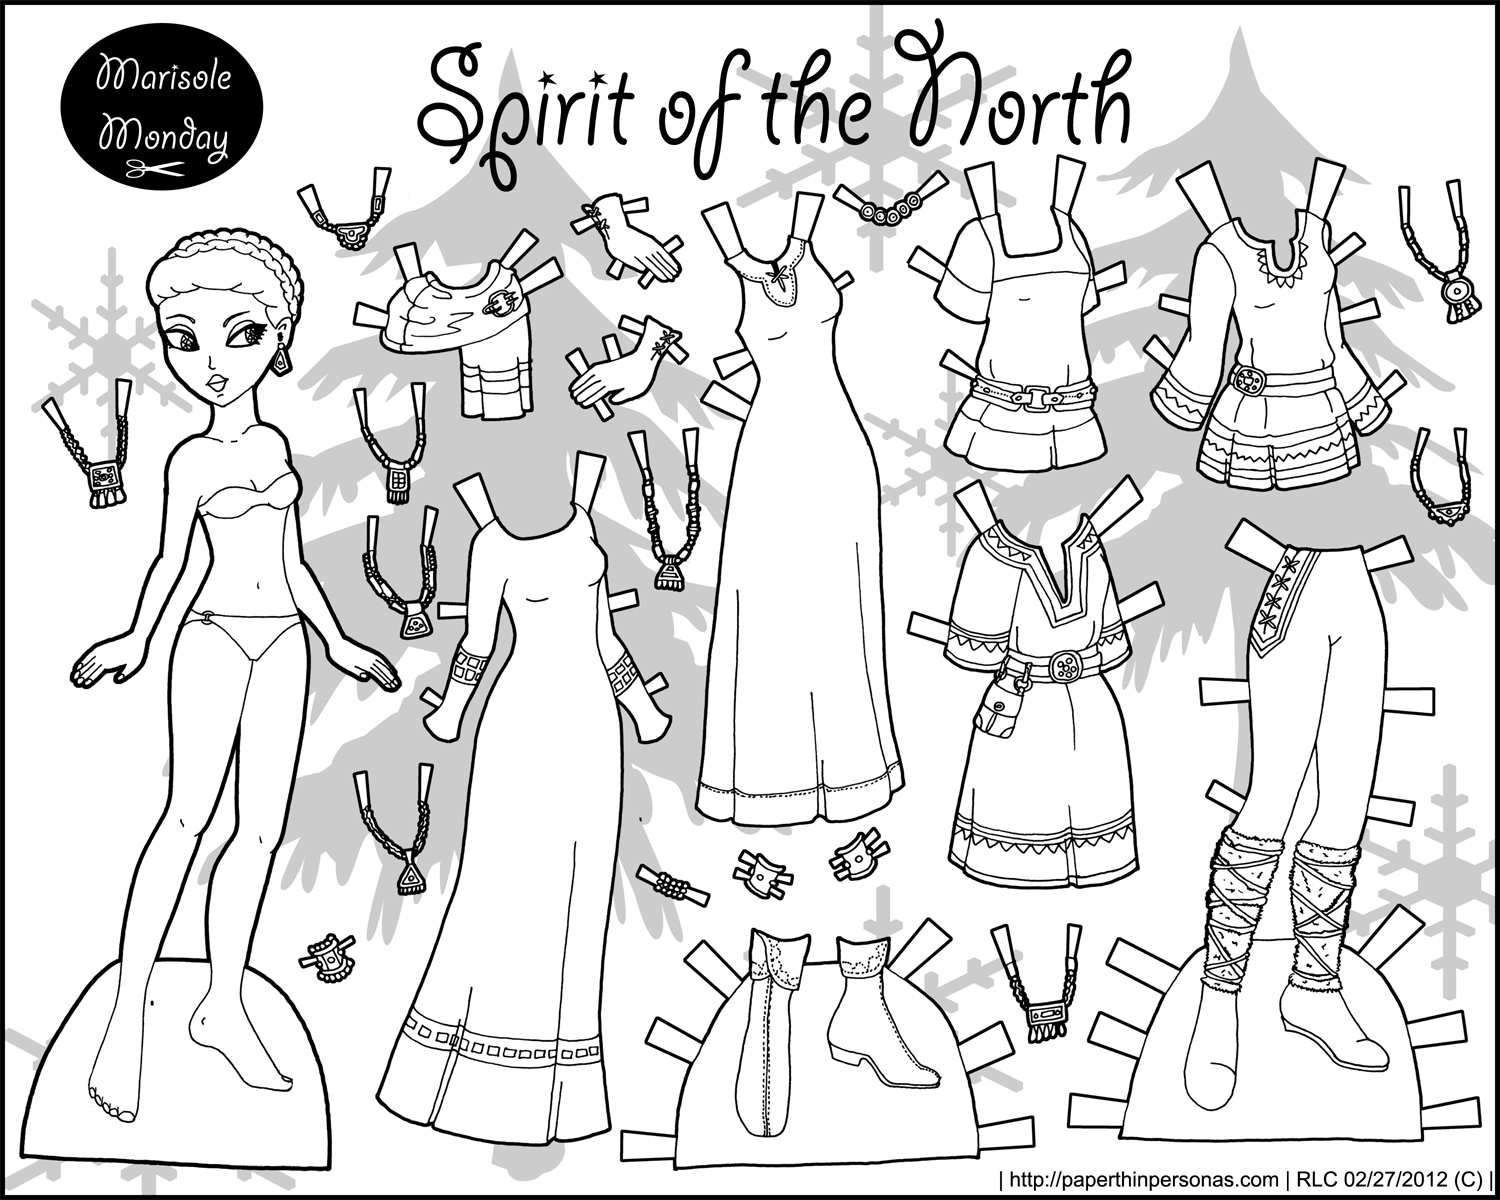 graphic relating to Free Printable Paper Dolls Black and White identify Spirit of the North: Black and White Printable Paper Doll